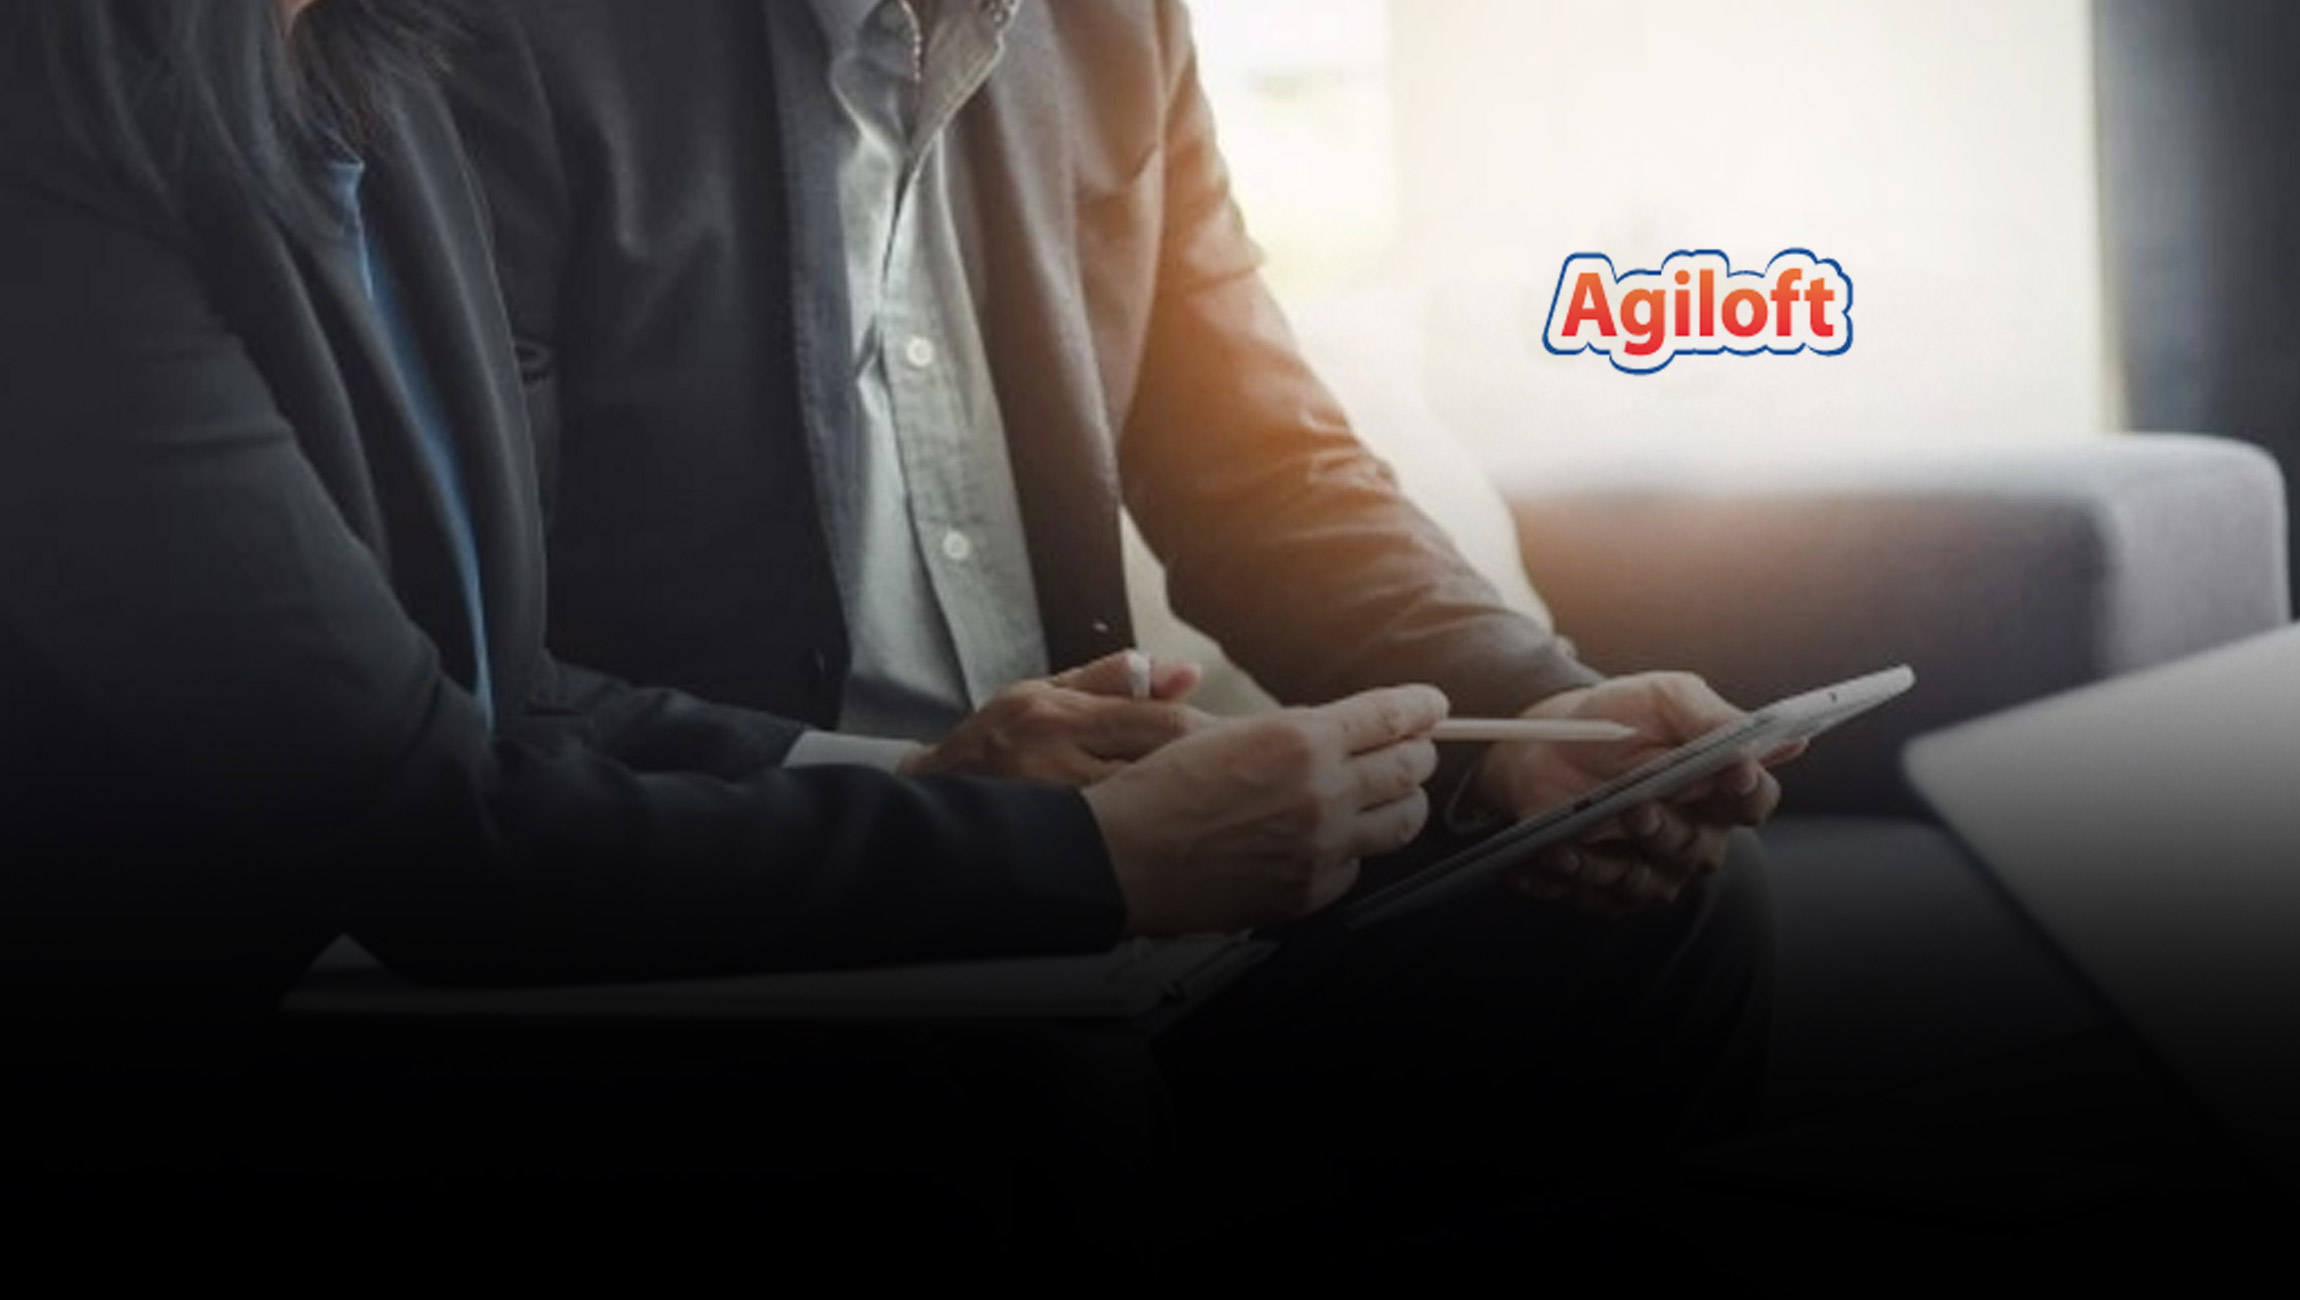 Agiloft Launches New User Interface and Enhanced AI for Contract Lifecycle Management to Accelerate Enterprise Productivity